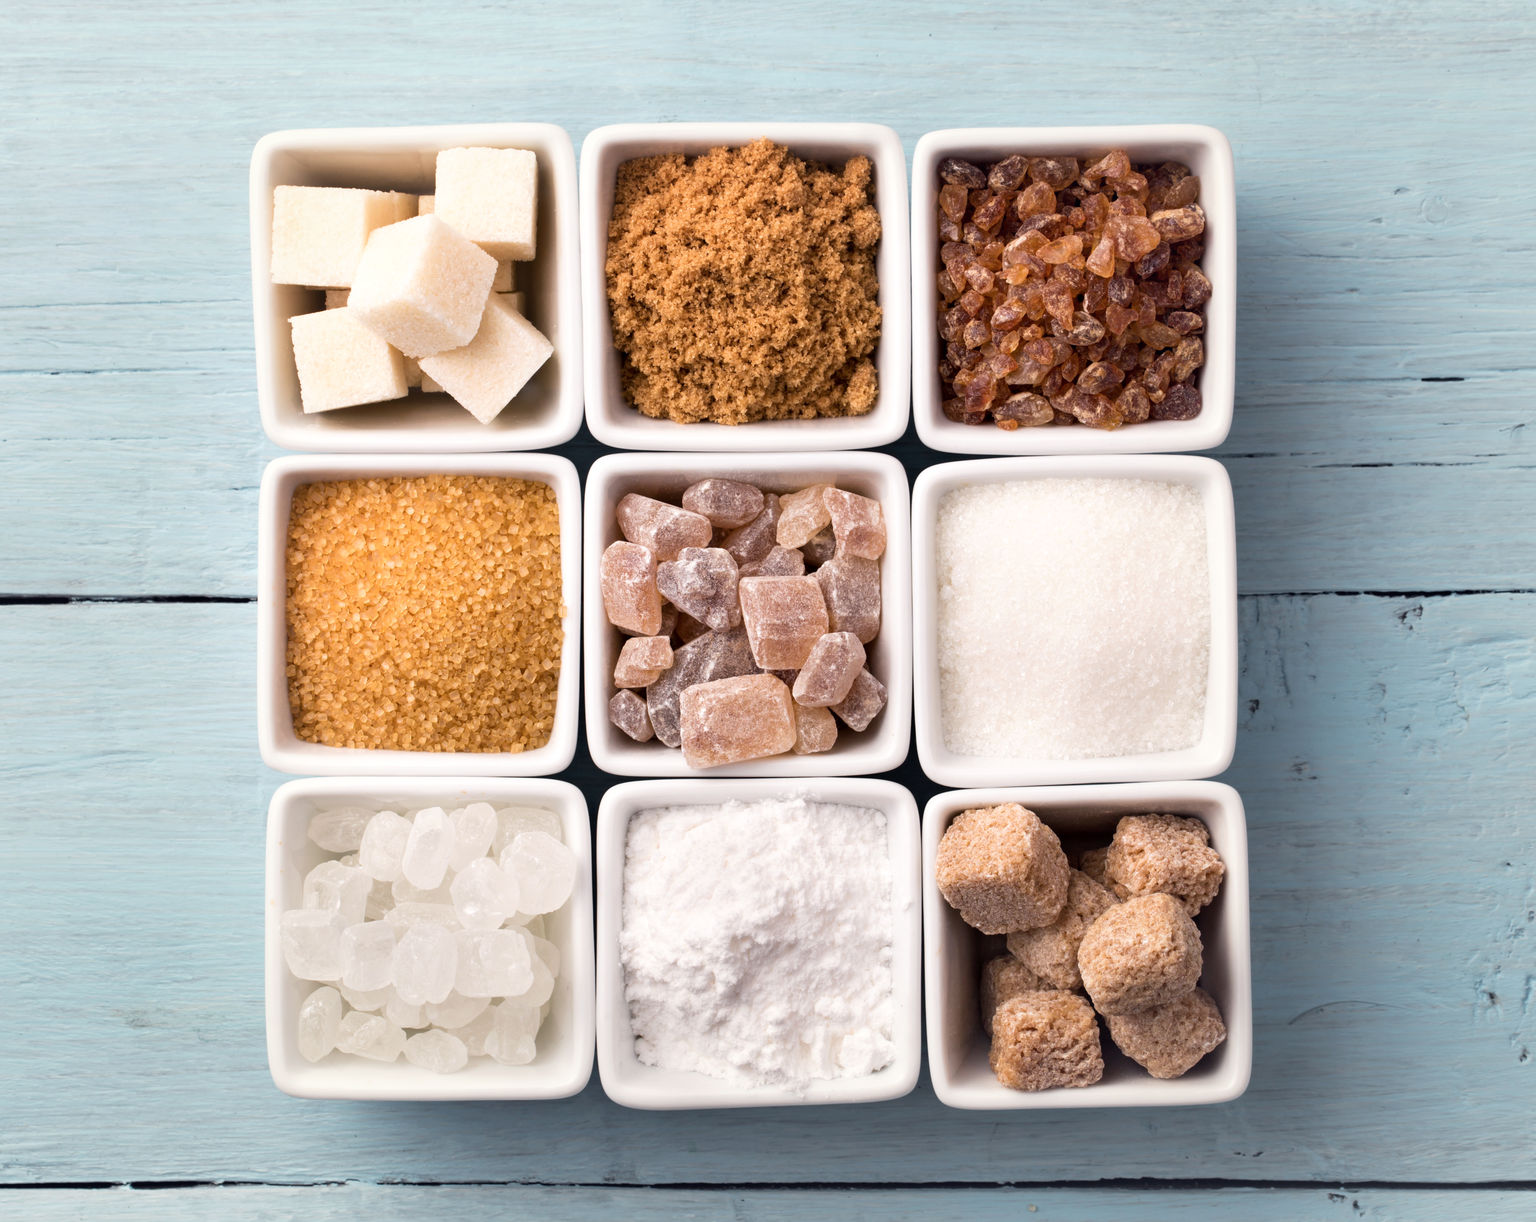 Healthiest Sugar Substitute: Which Should You Use?